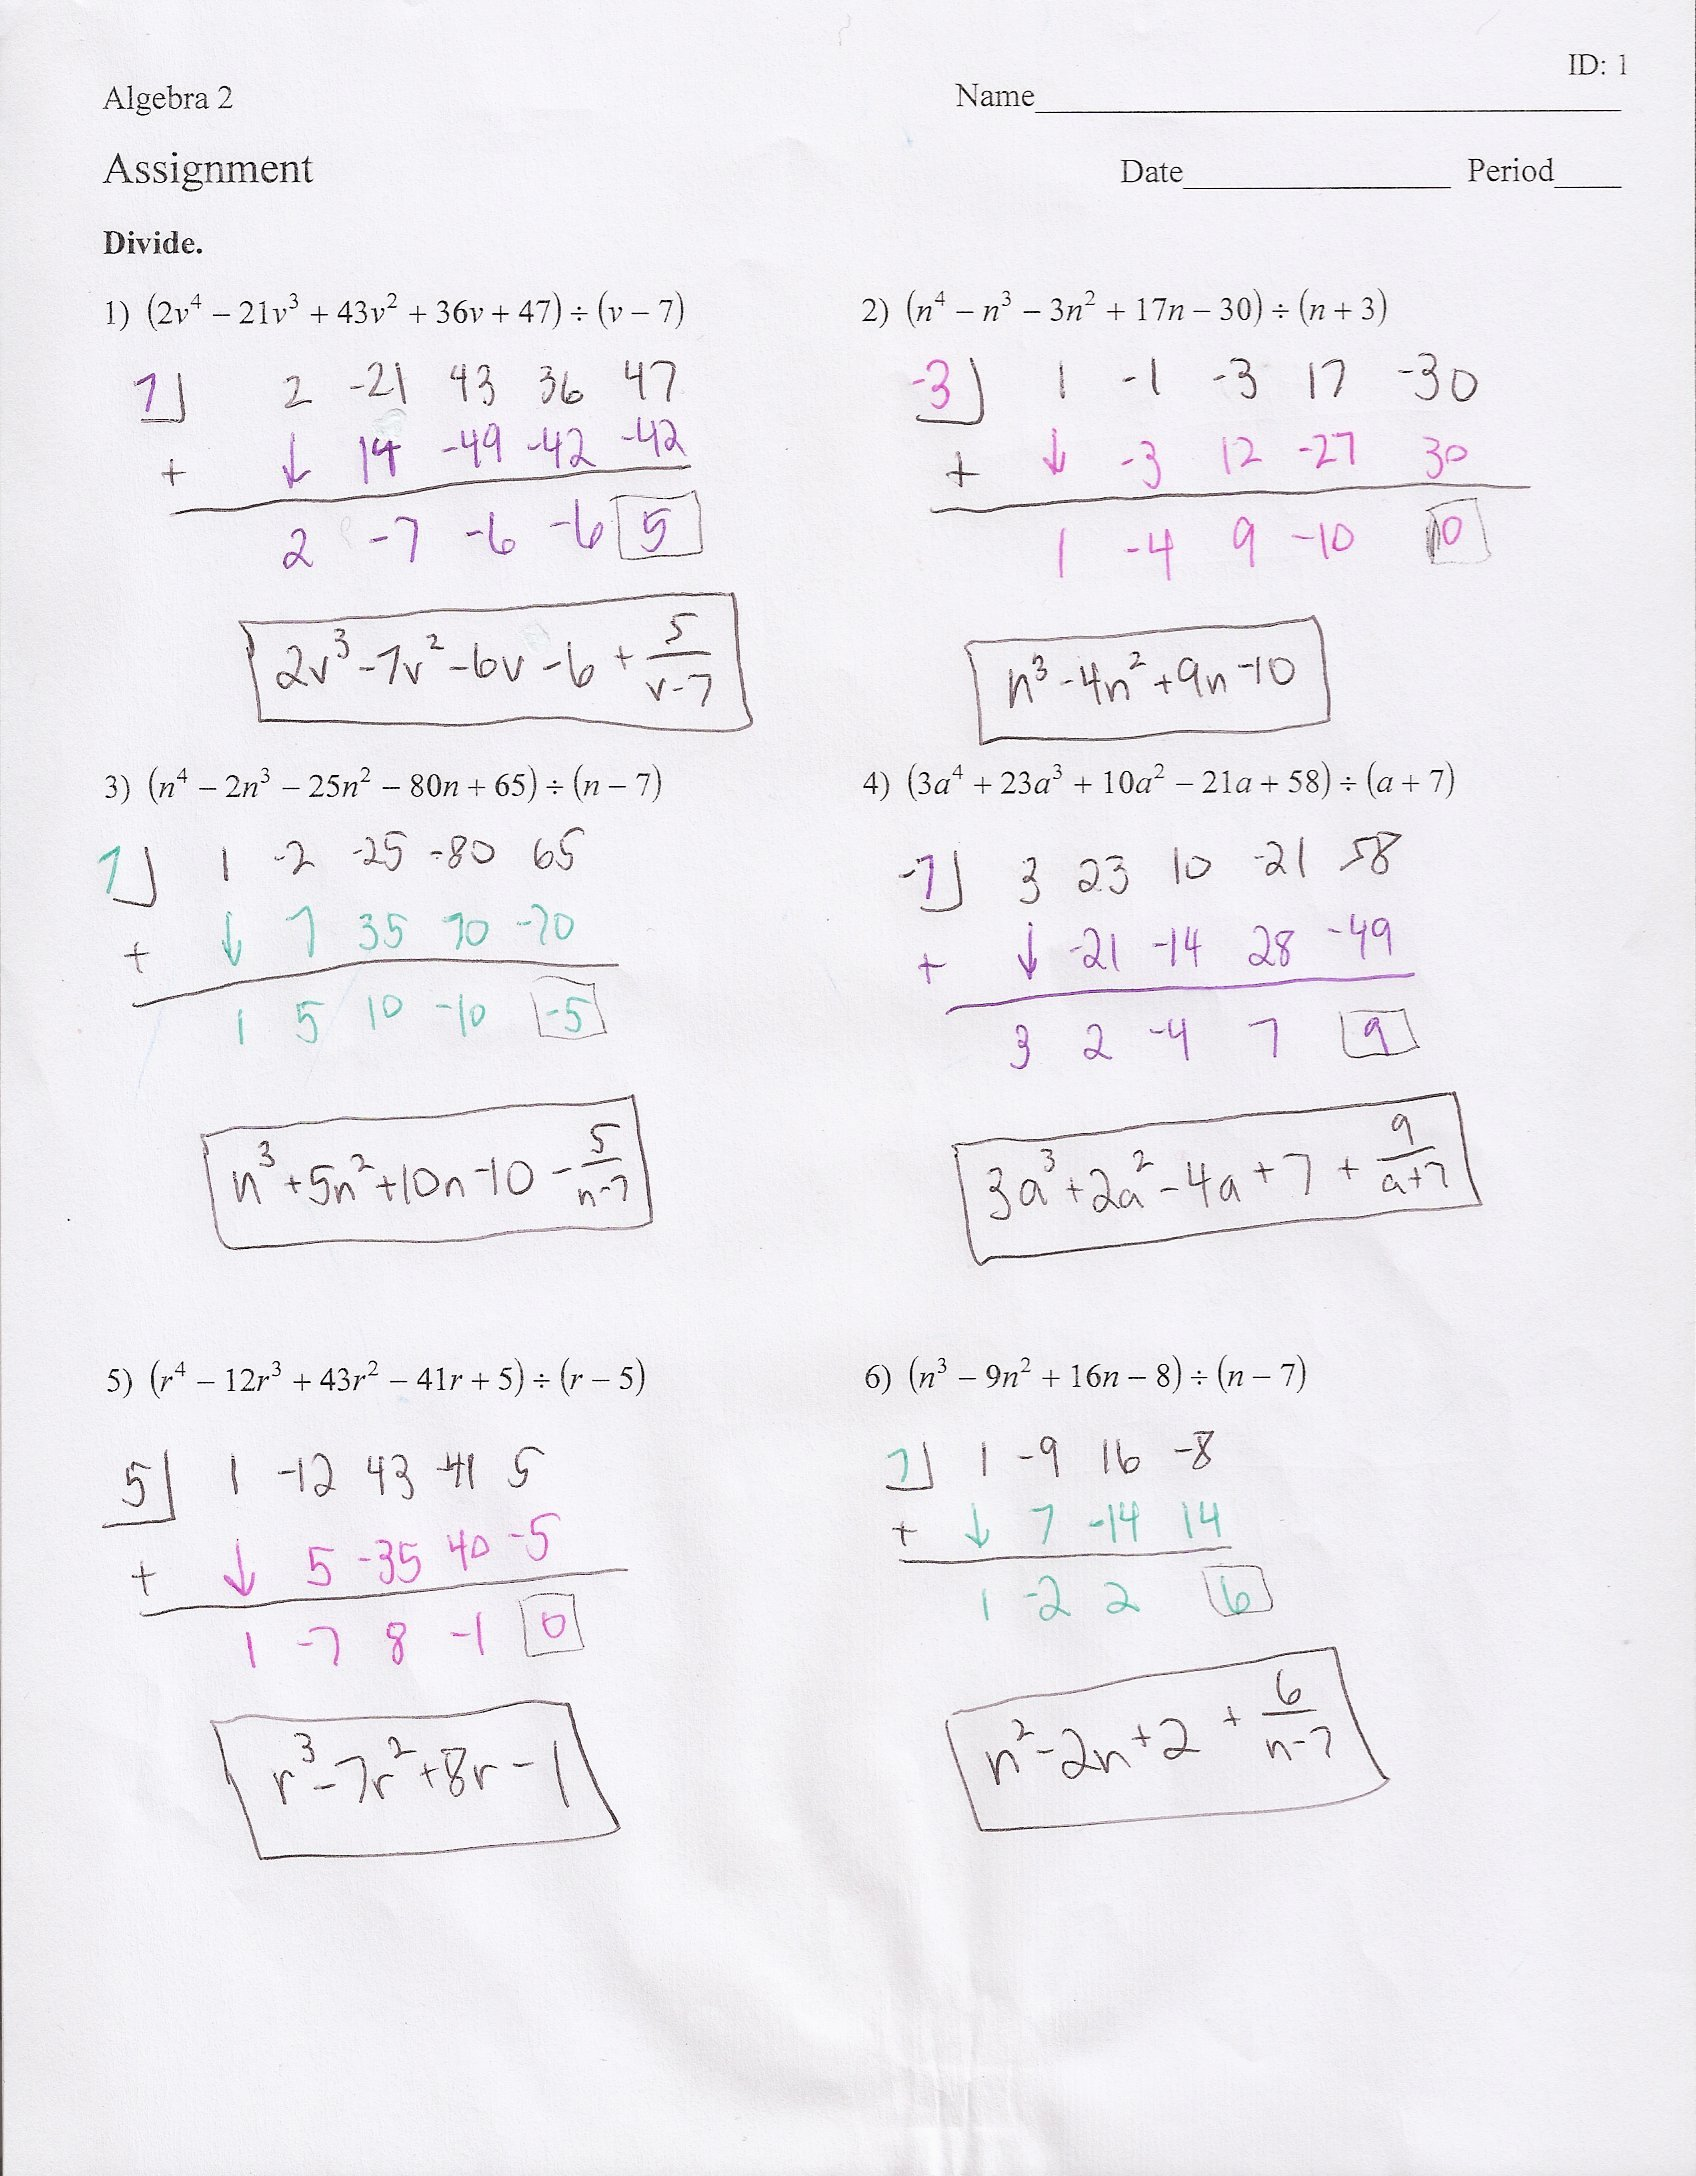 Division Of Polynomials Worksheet Unique Synthetic Division Polynomials Worksheet the Best